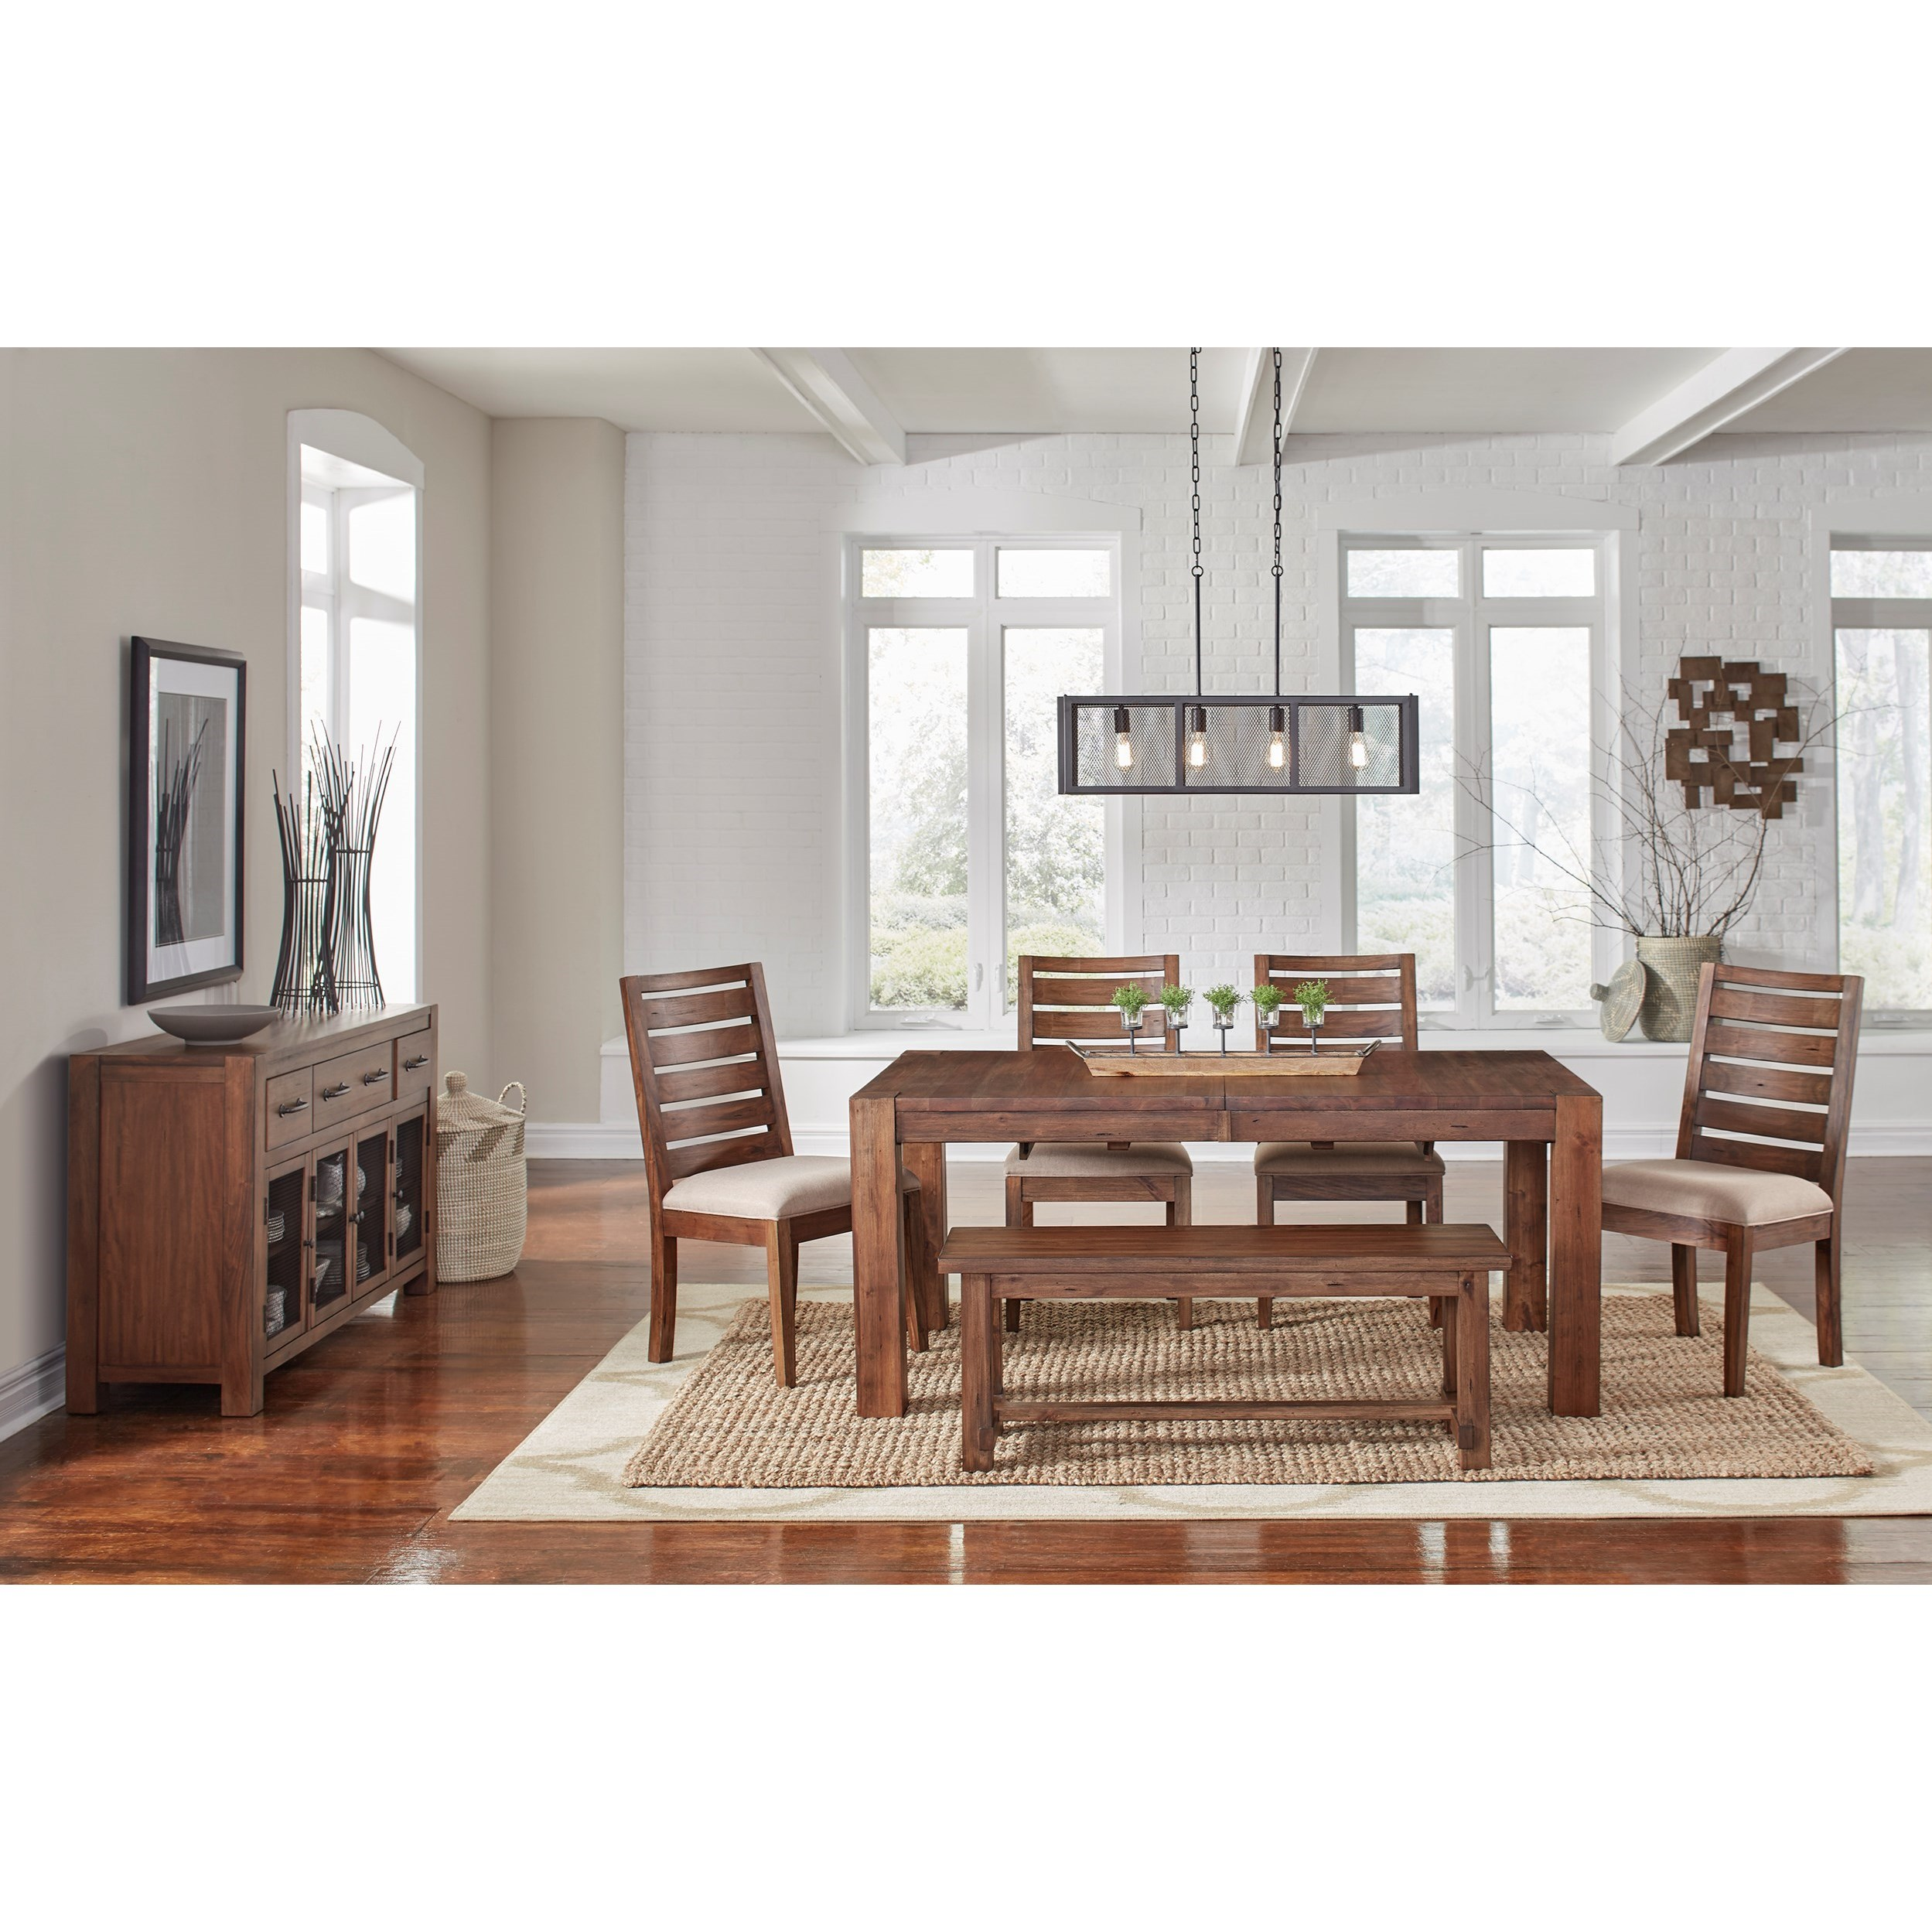 Anacortes Dining Room Group by AAmerica at Furniture and ApplianceMart